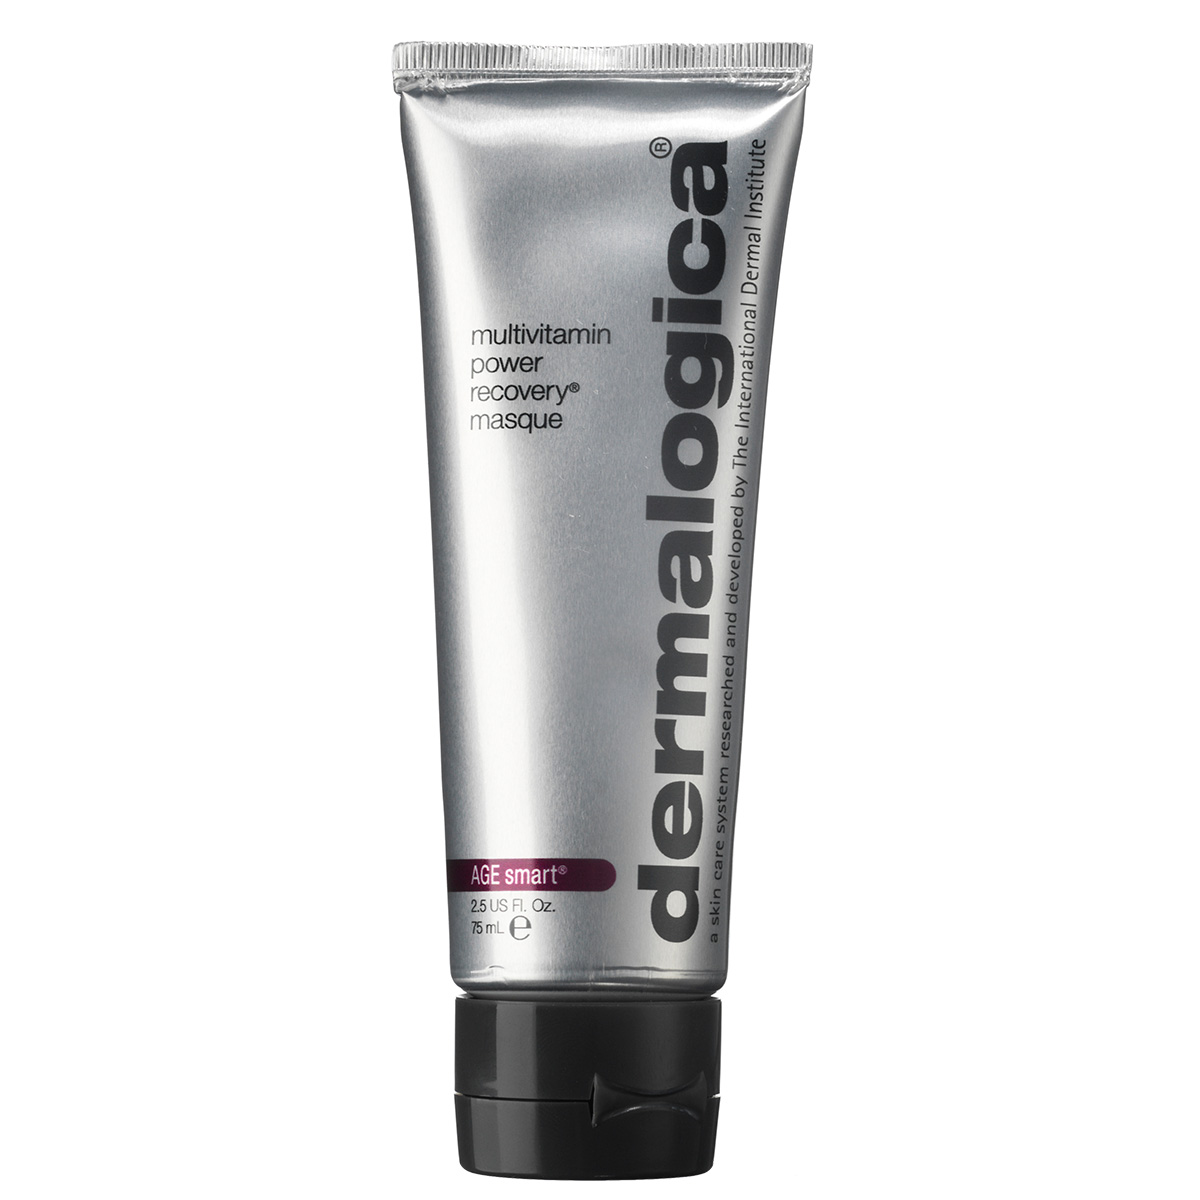 Dermalogica MultiVitamin Power Recovery Masque - 75 ml